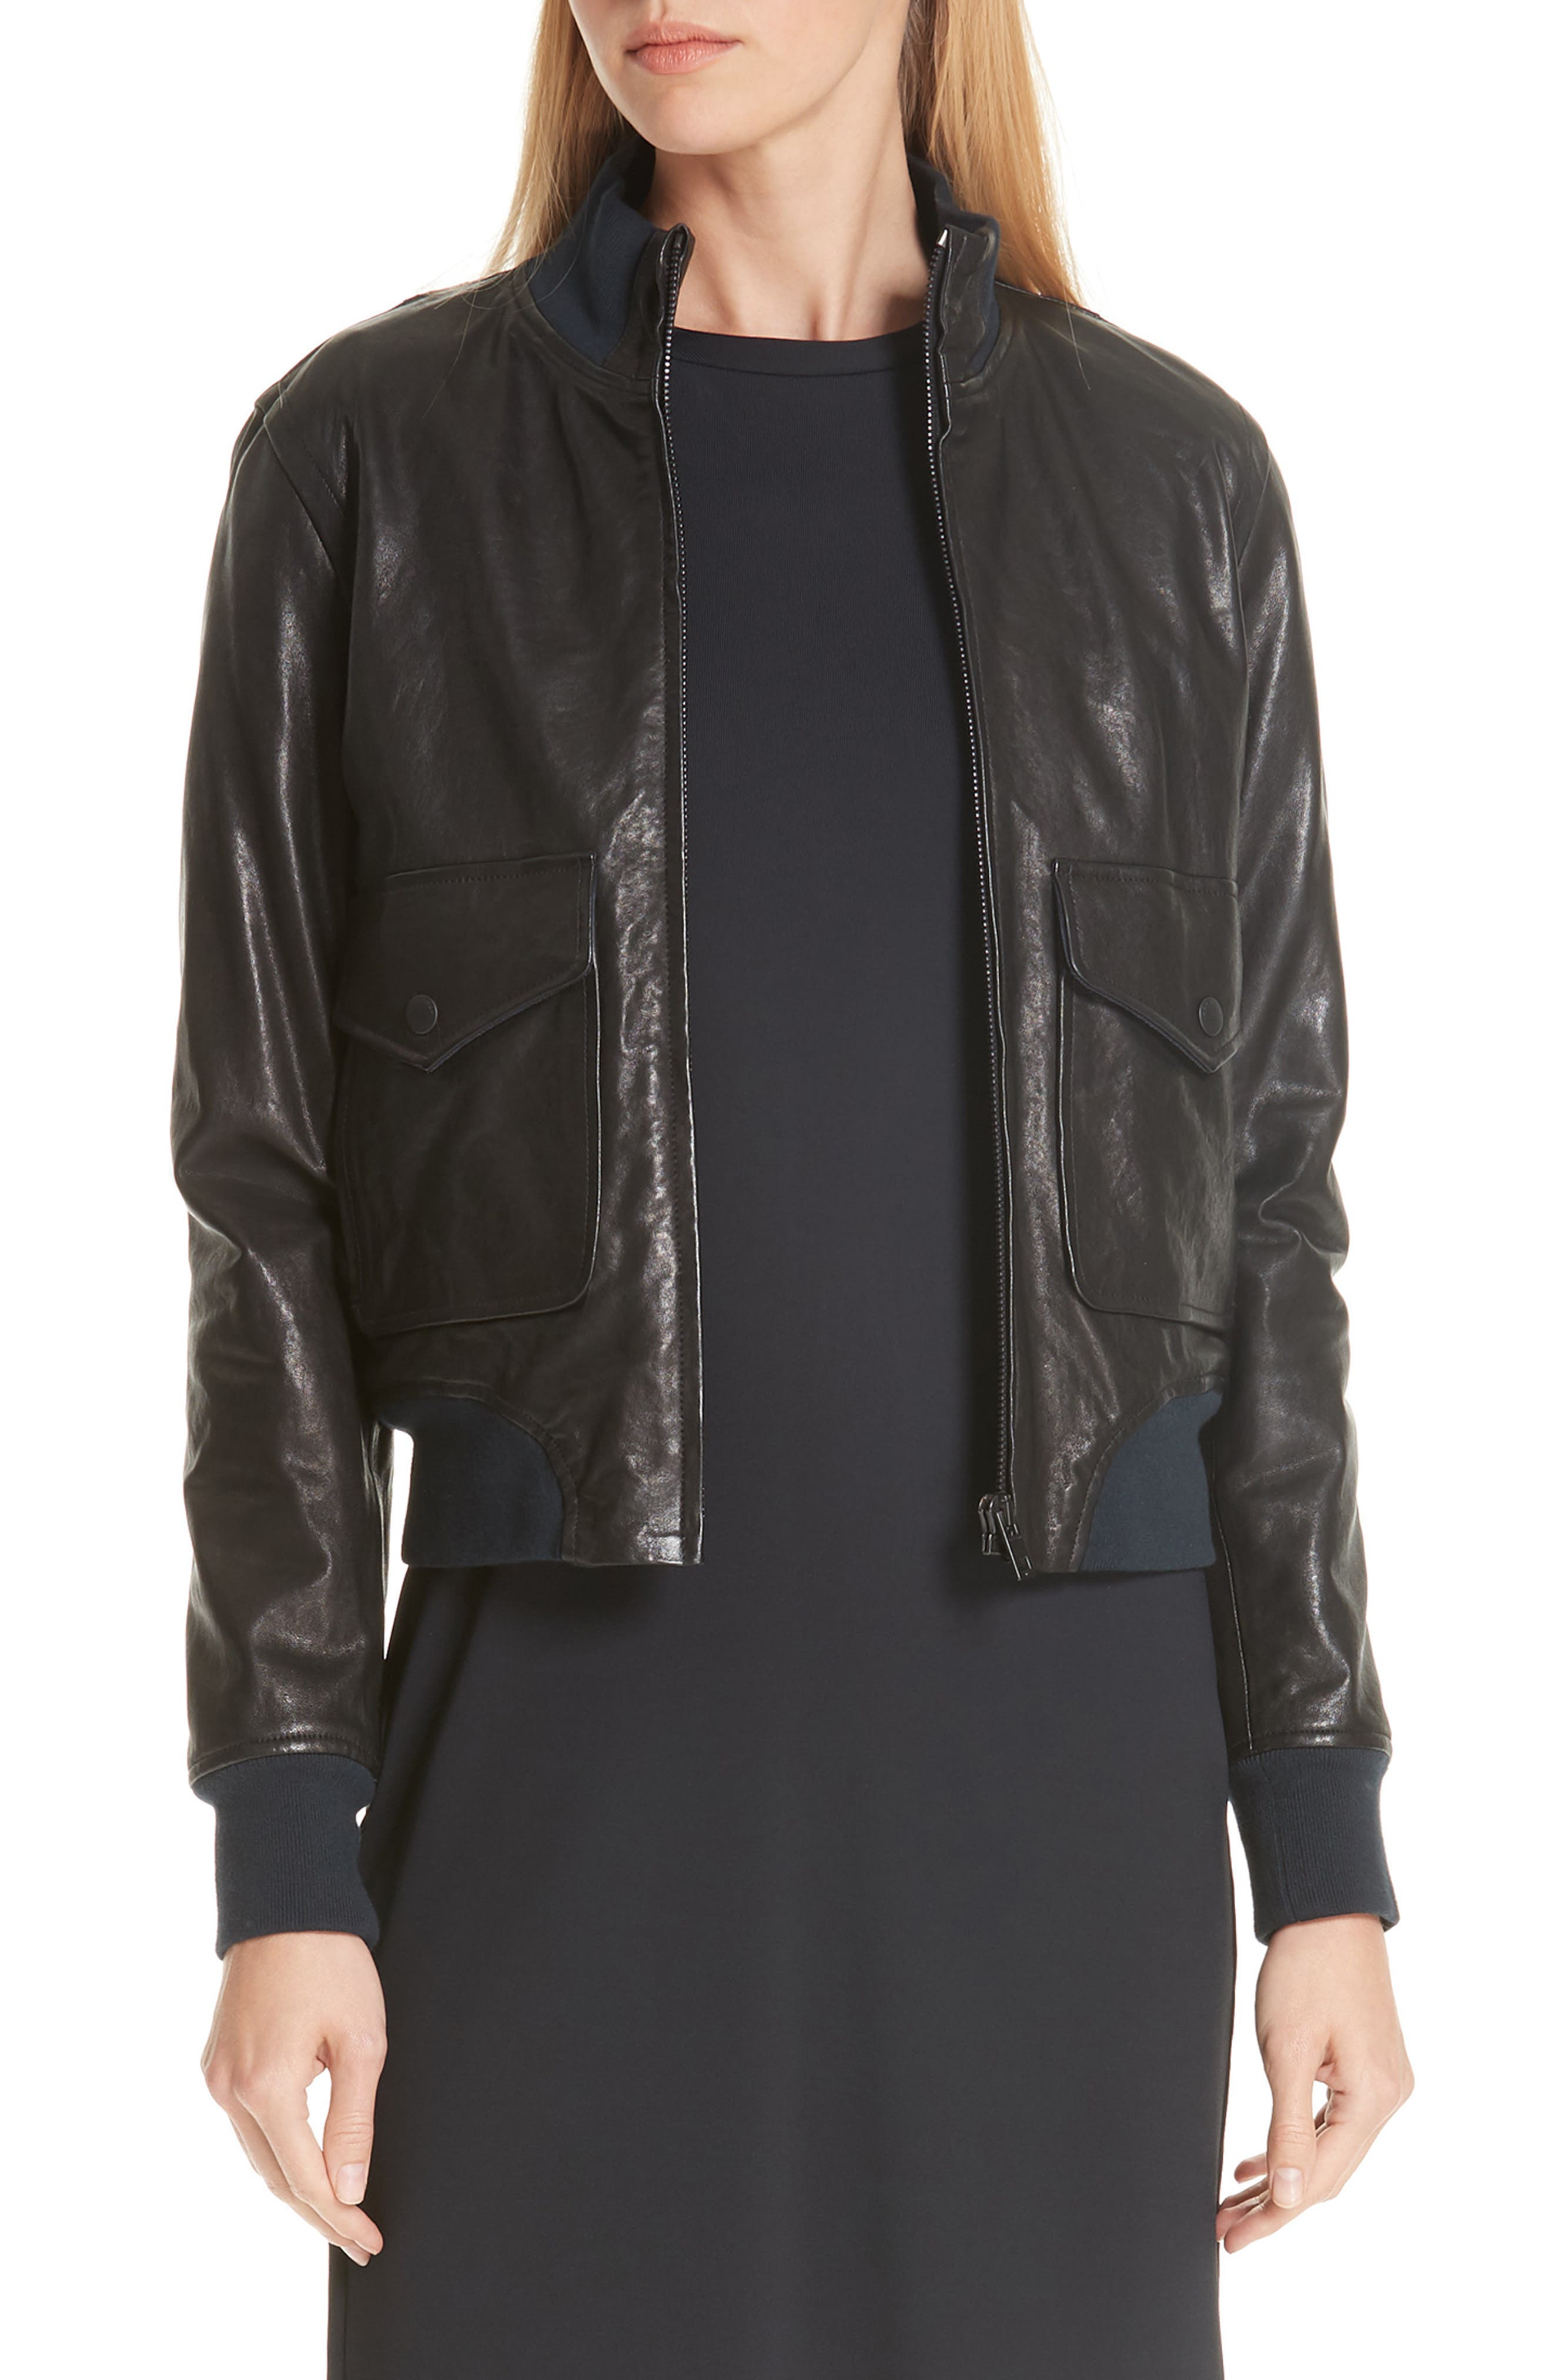 Mila Lambskin Leather Jacket,                             Main thumbnail 1, color,                             001